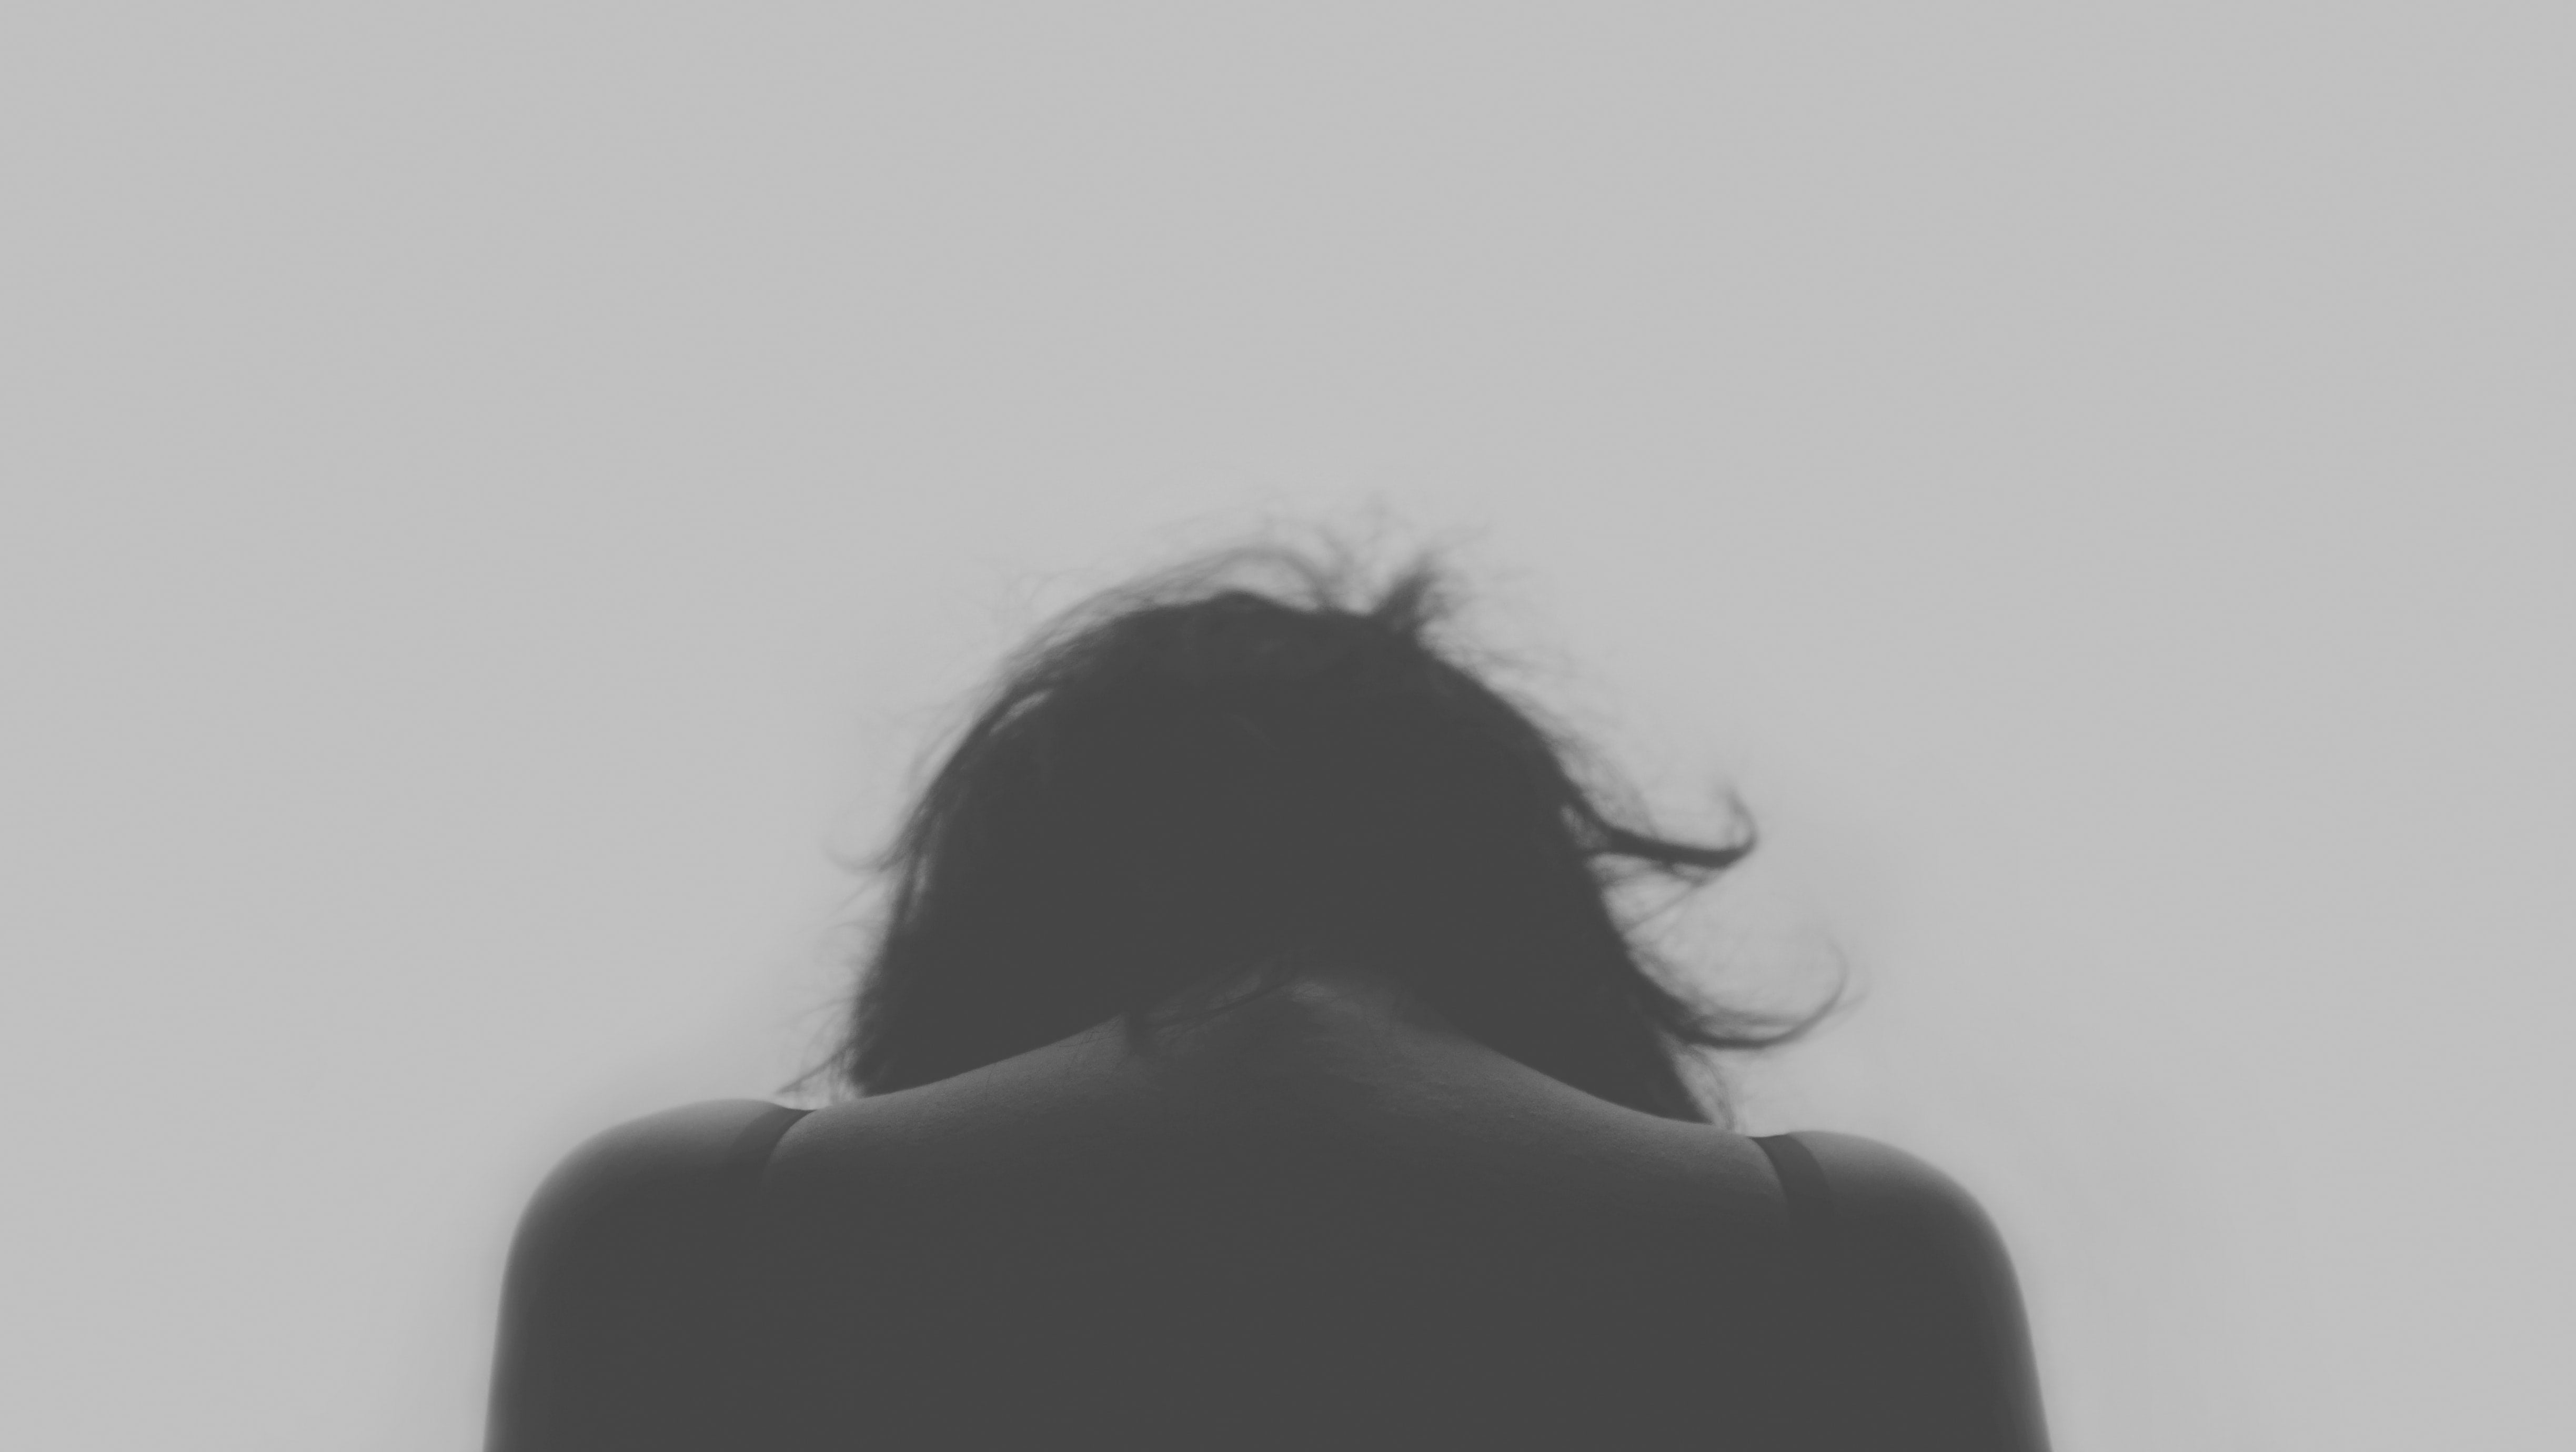 Female head from behind in black and white